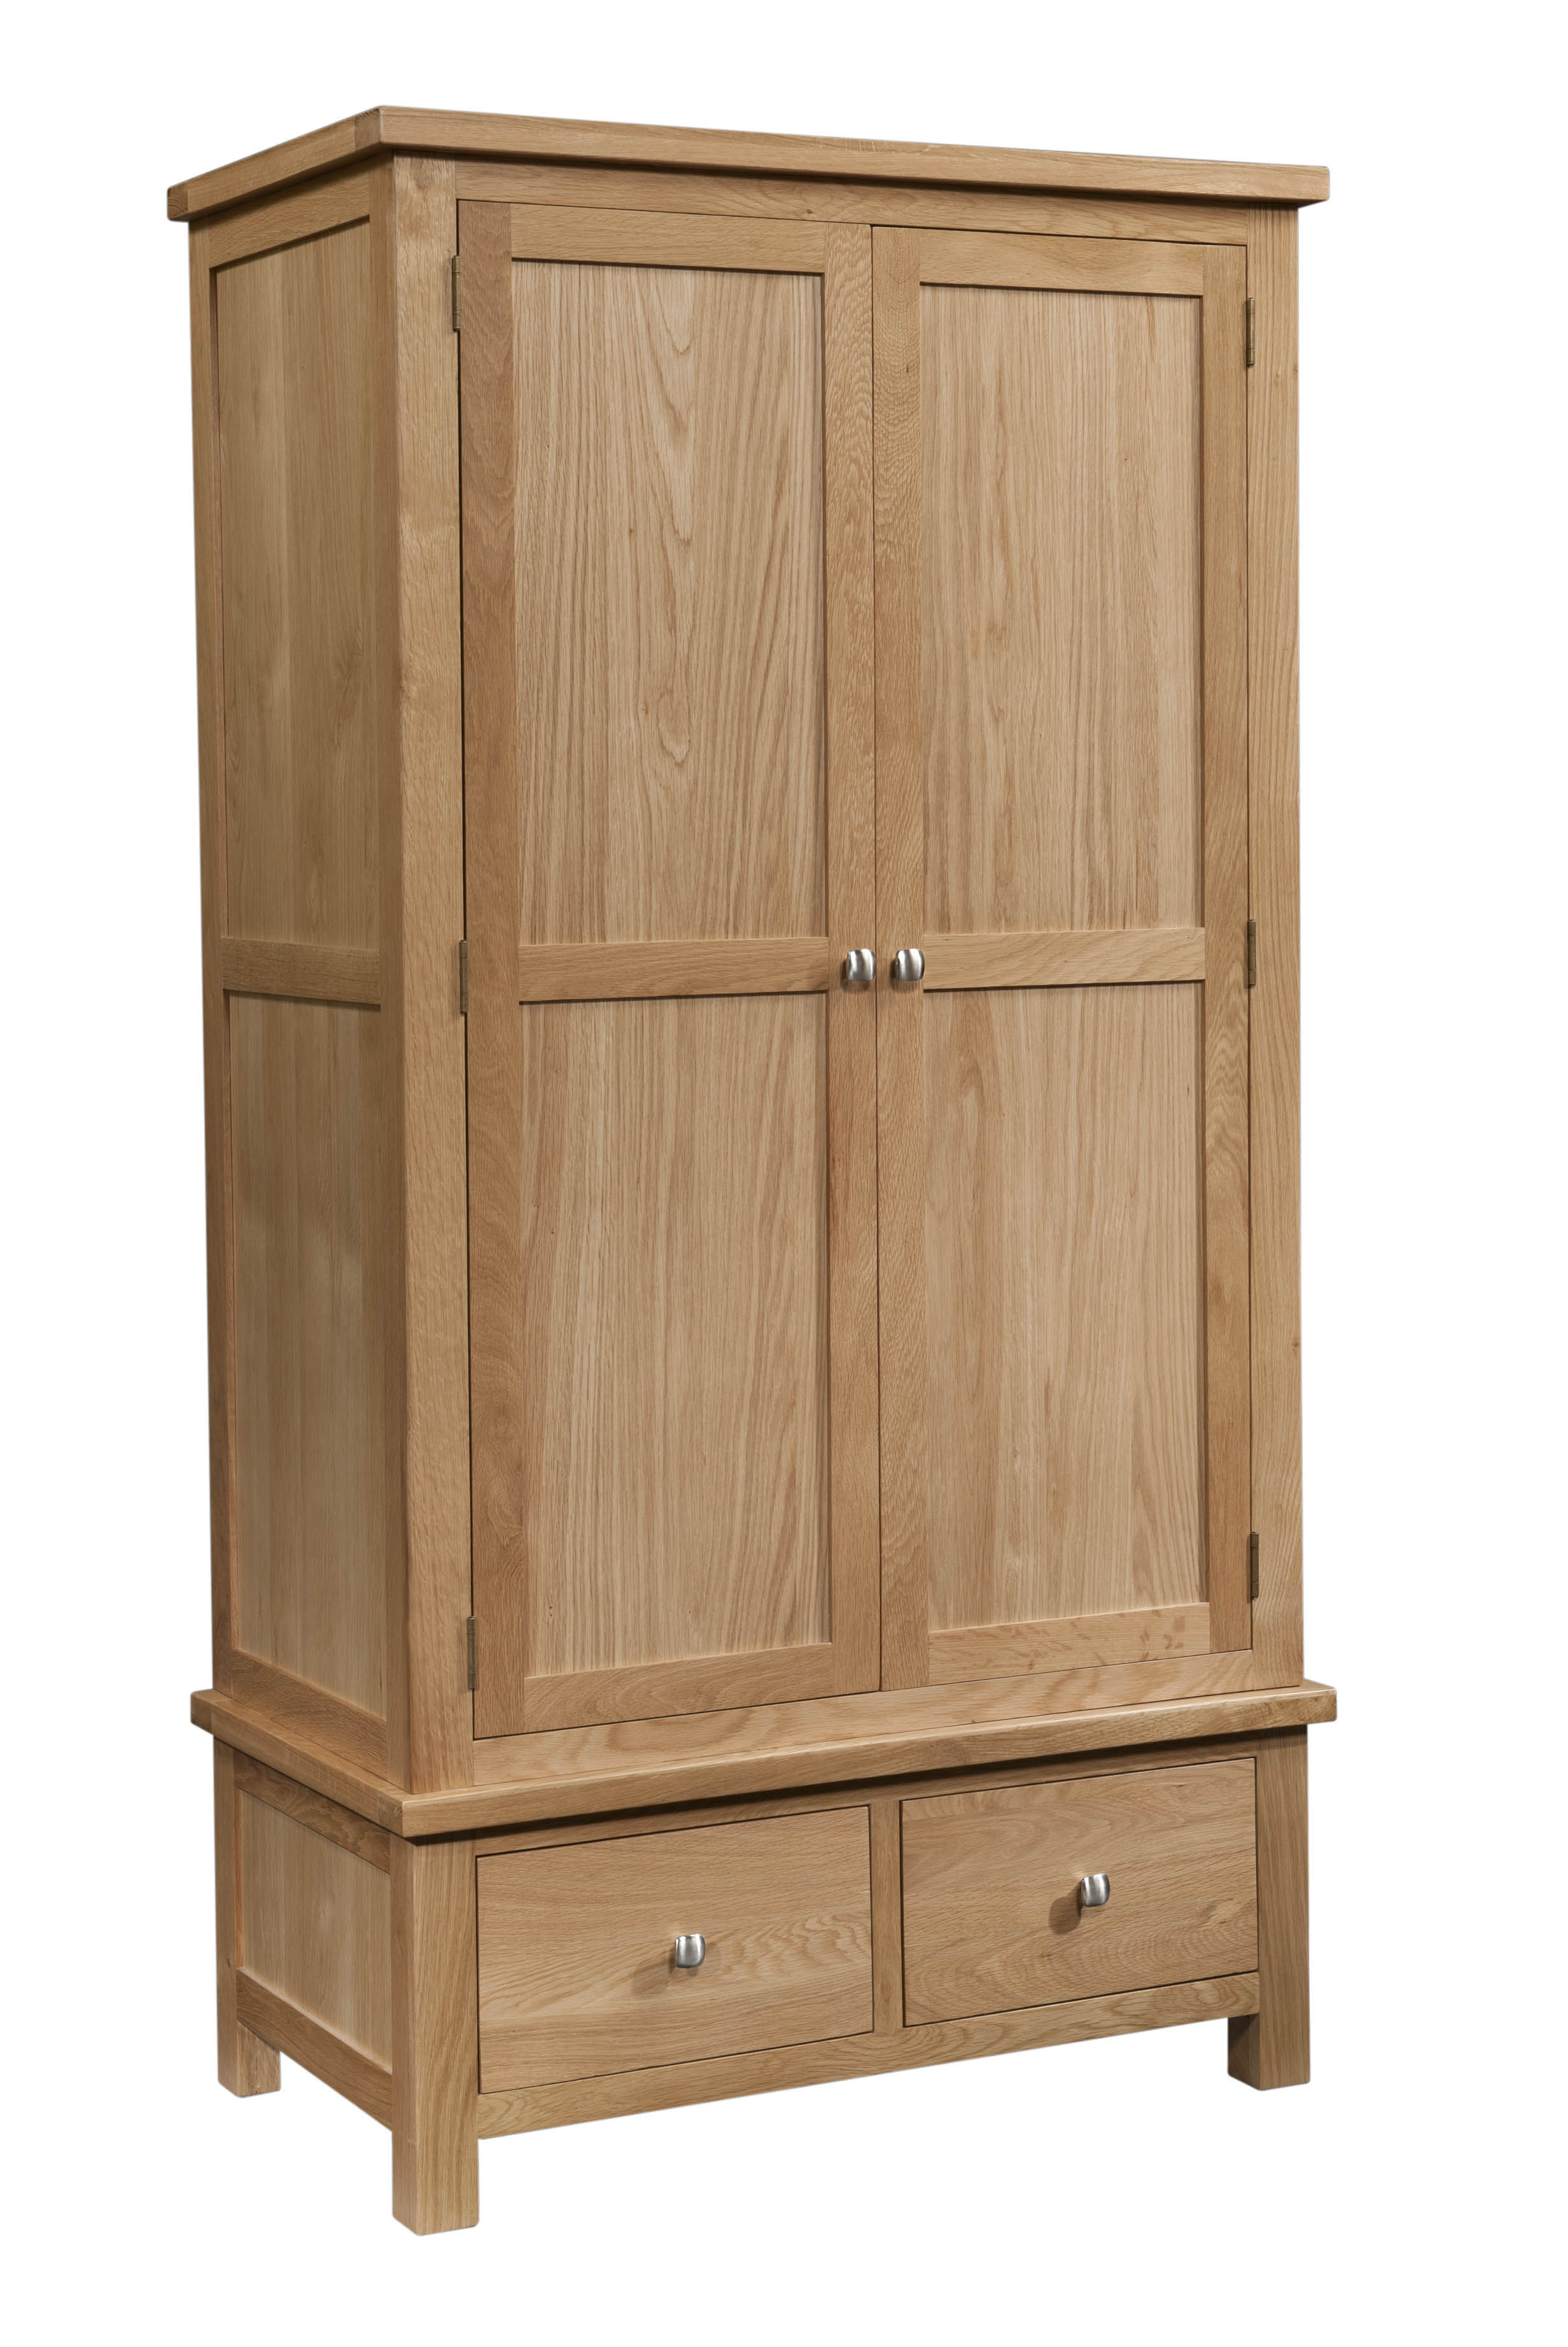 DORCHESTER OAK Double Wardrobe with 2 Drawers